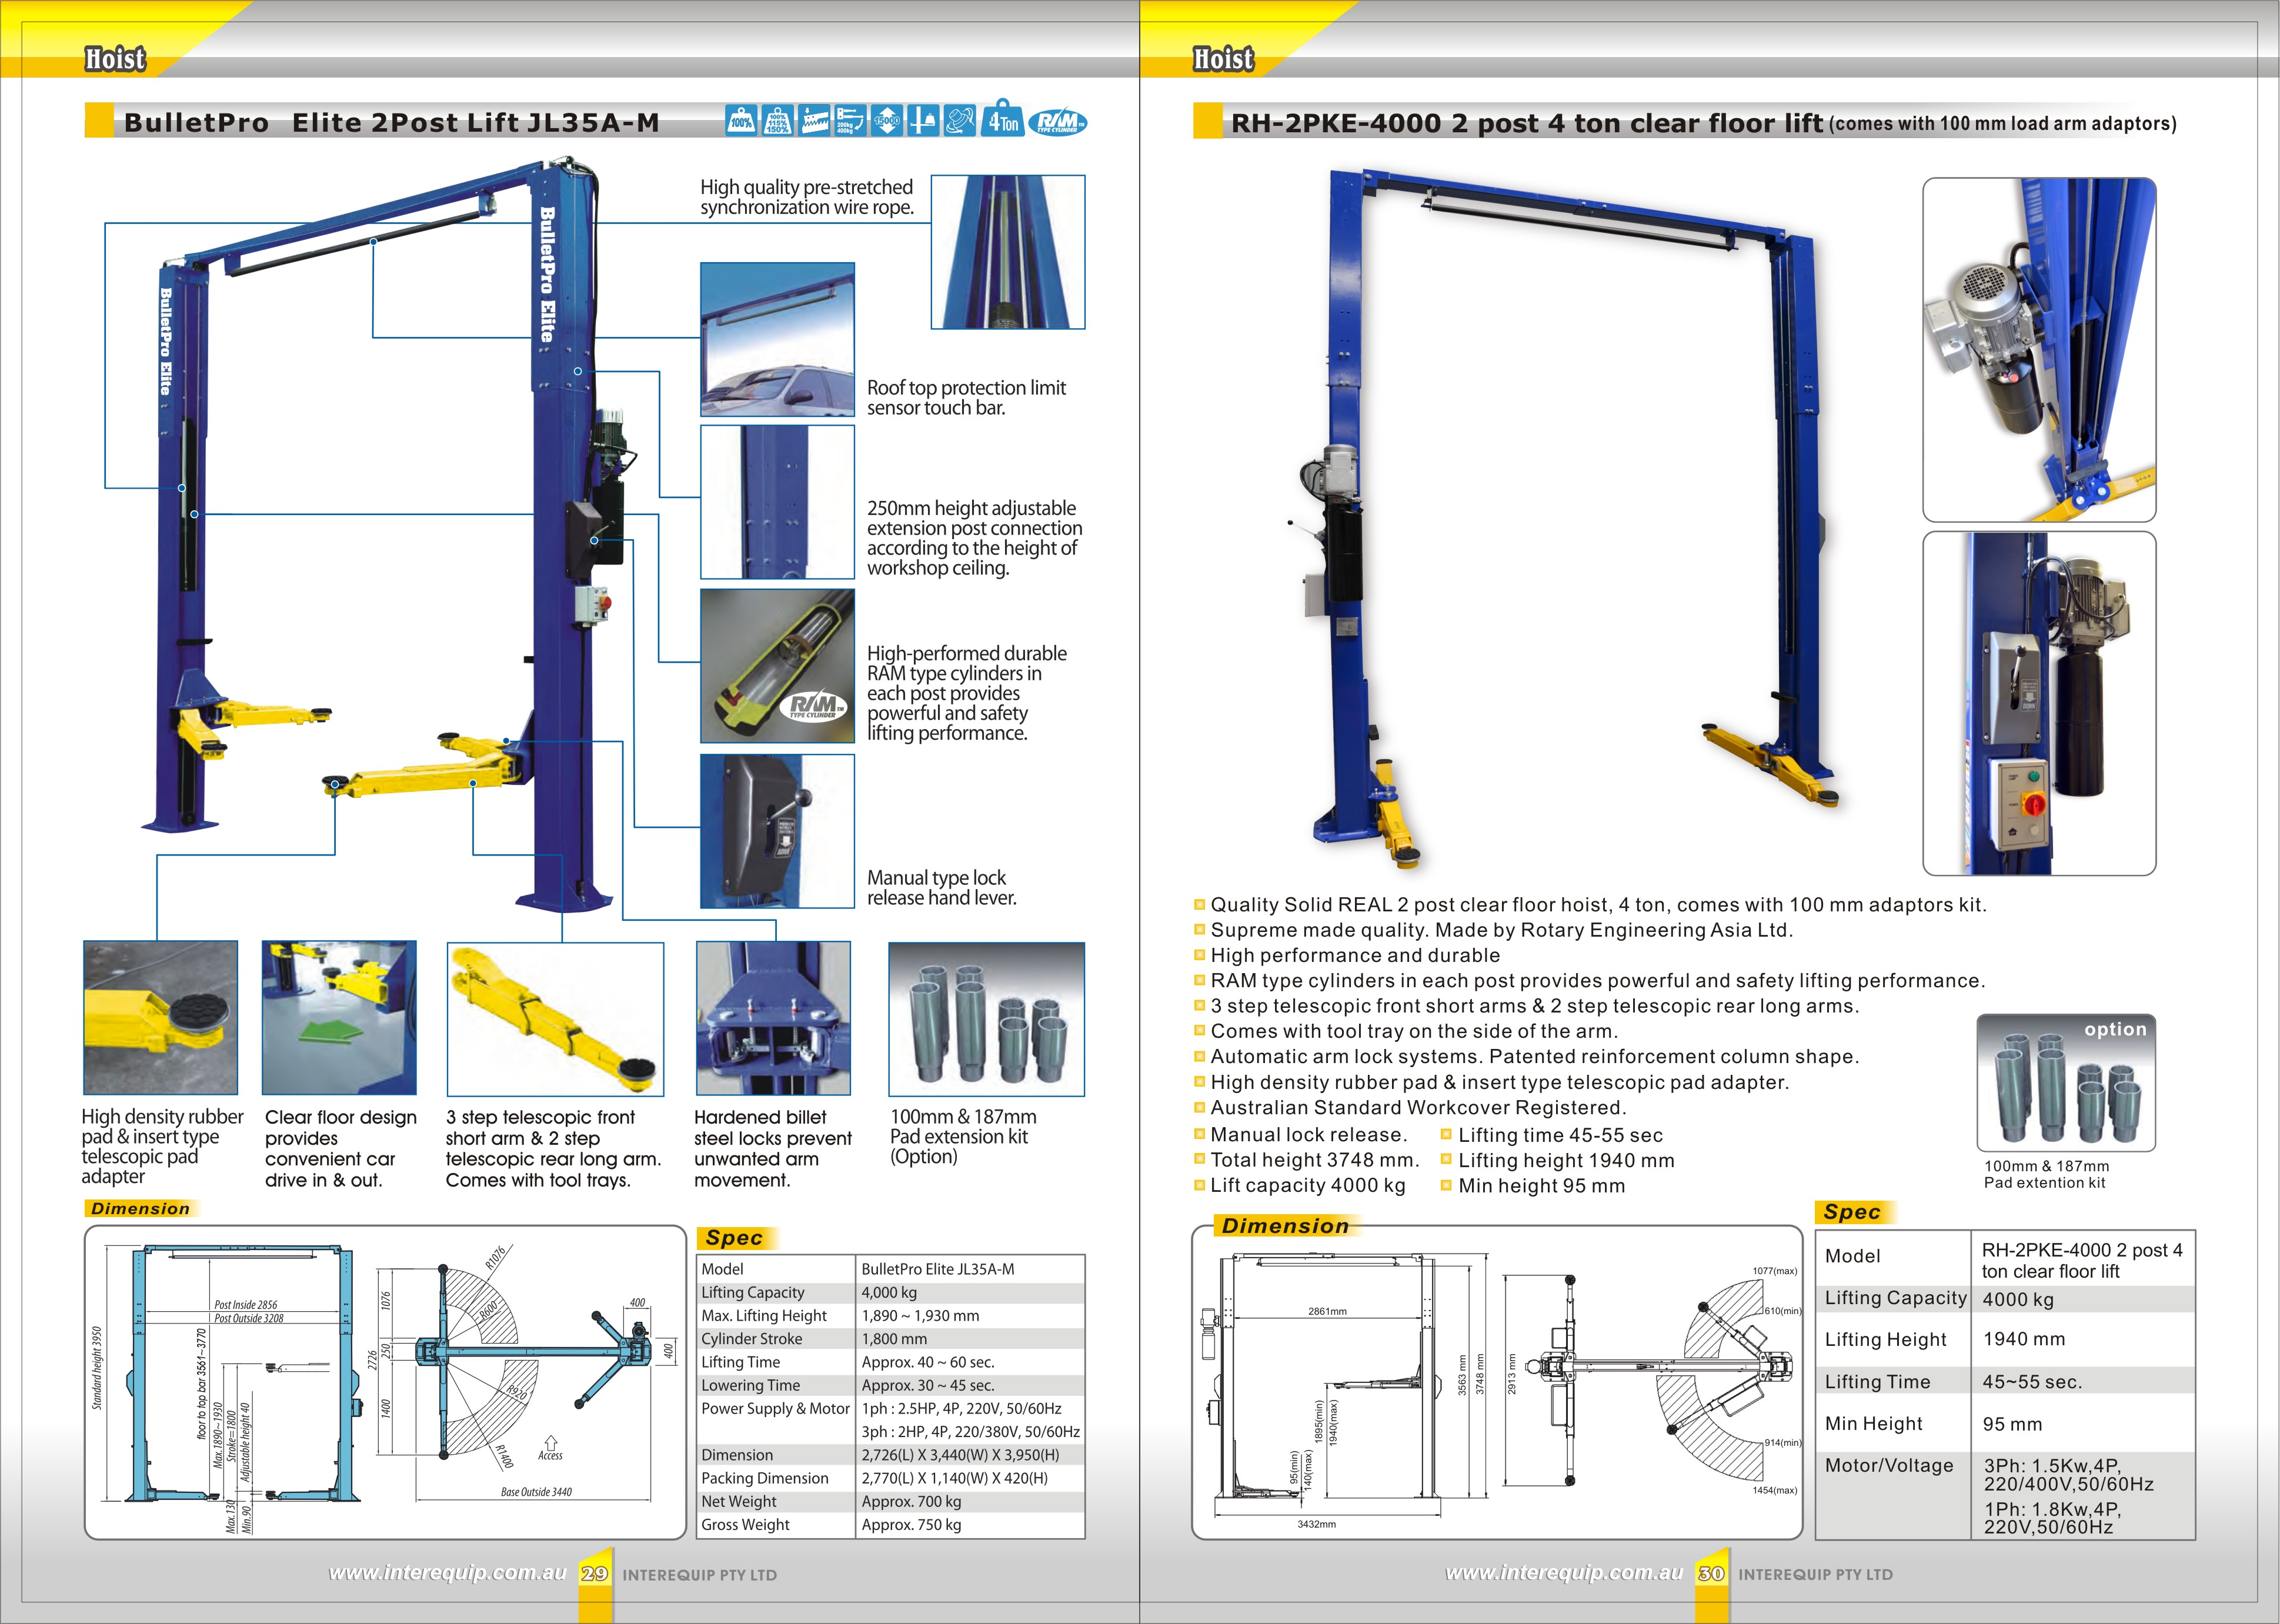 Tecalemit 2 Post Lift Wiring Diagram Chair Schematic Real Clear Floor 4 Ton Interequip Pty Ltd Stair Diagrams